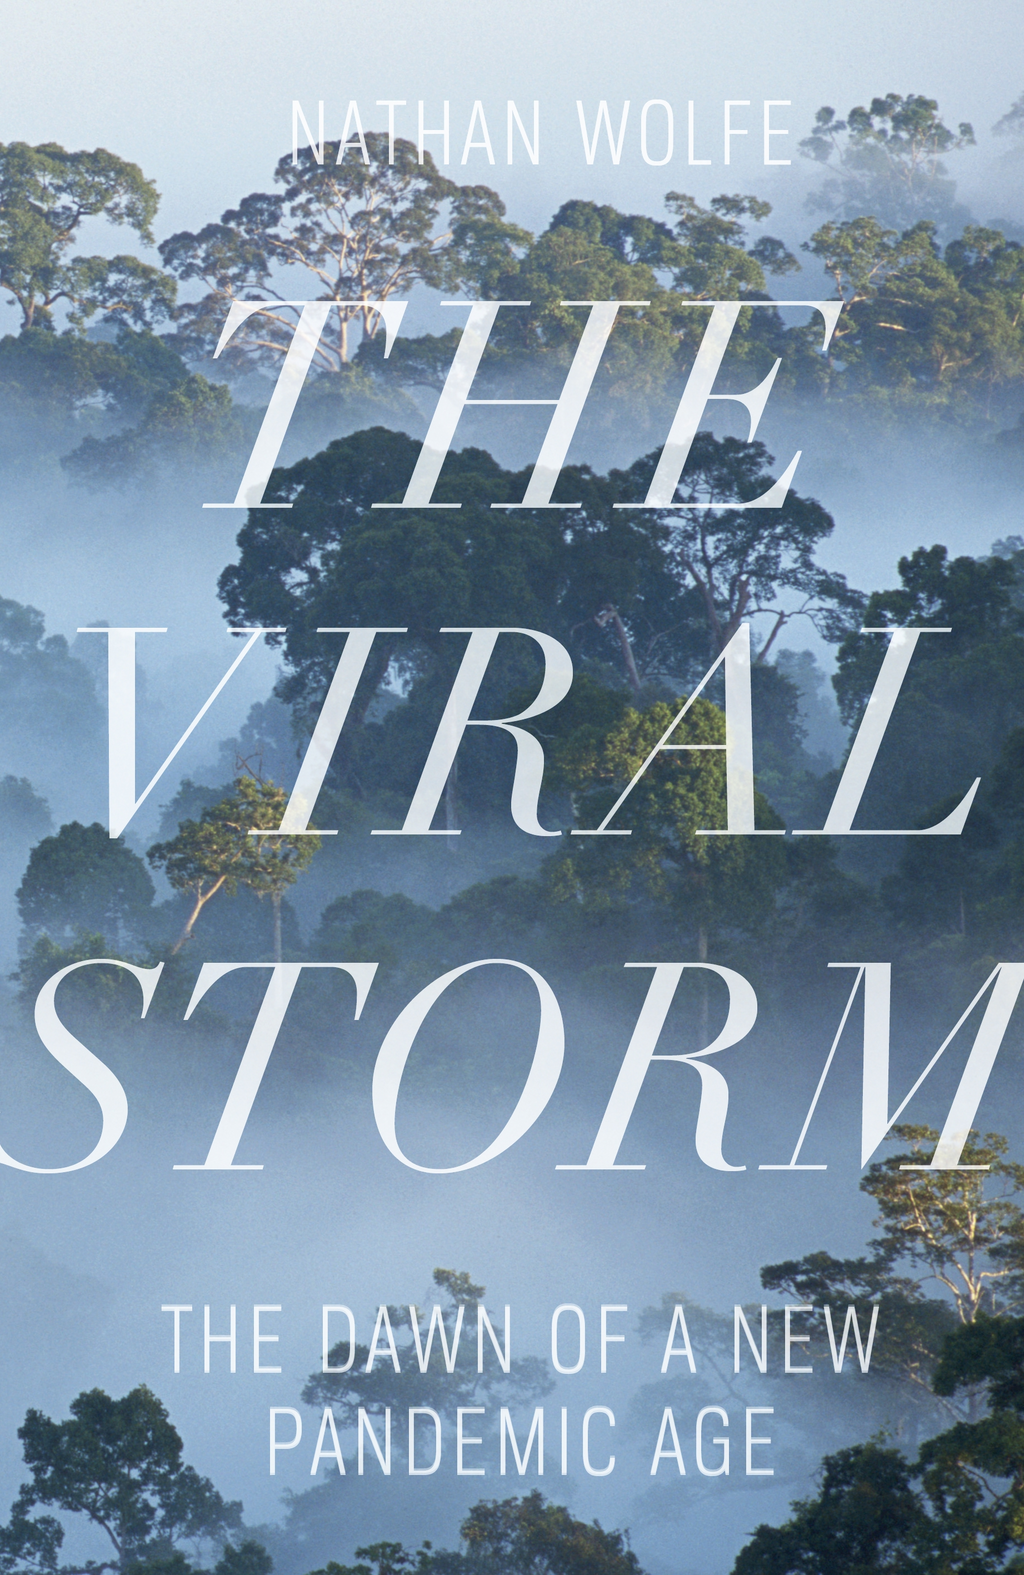 The Viral Storm The Dawn of a New Pandemic Age